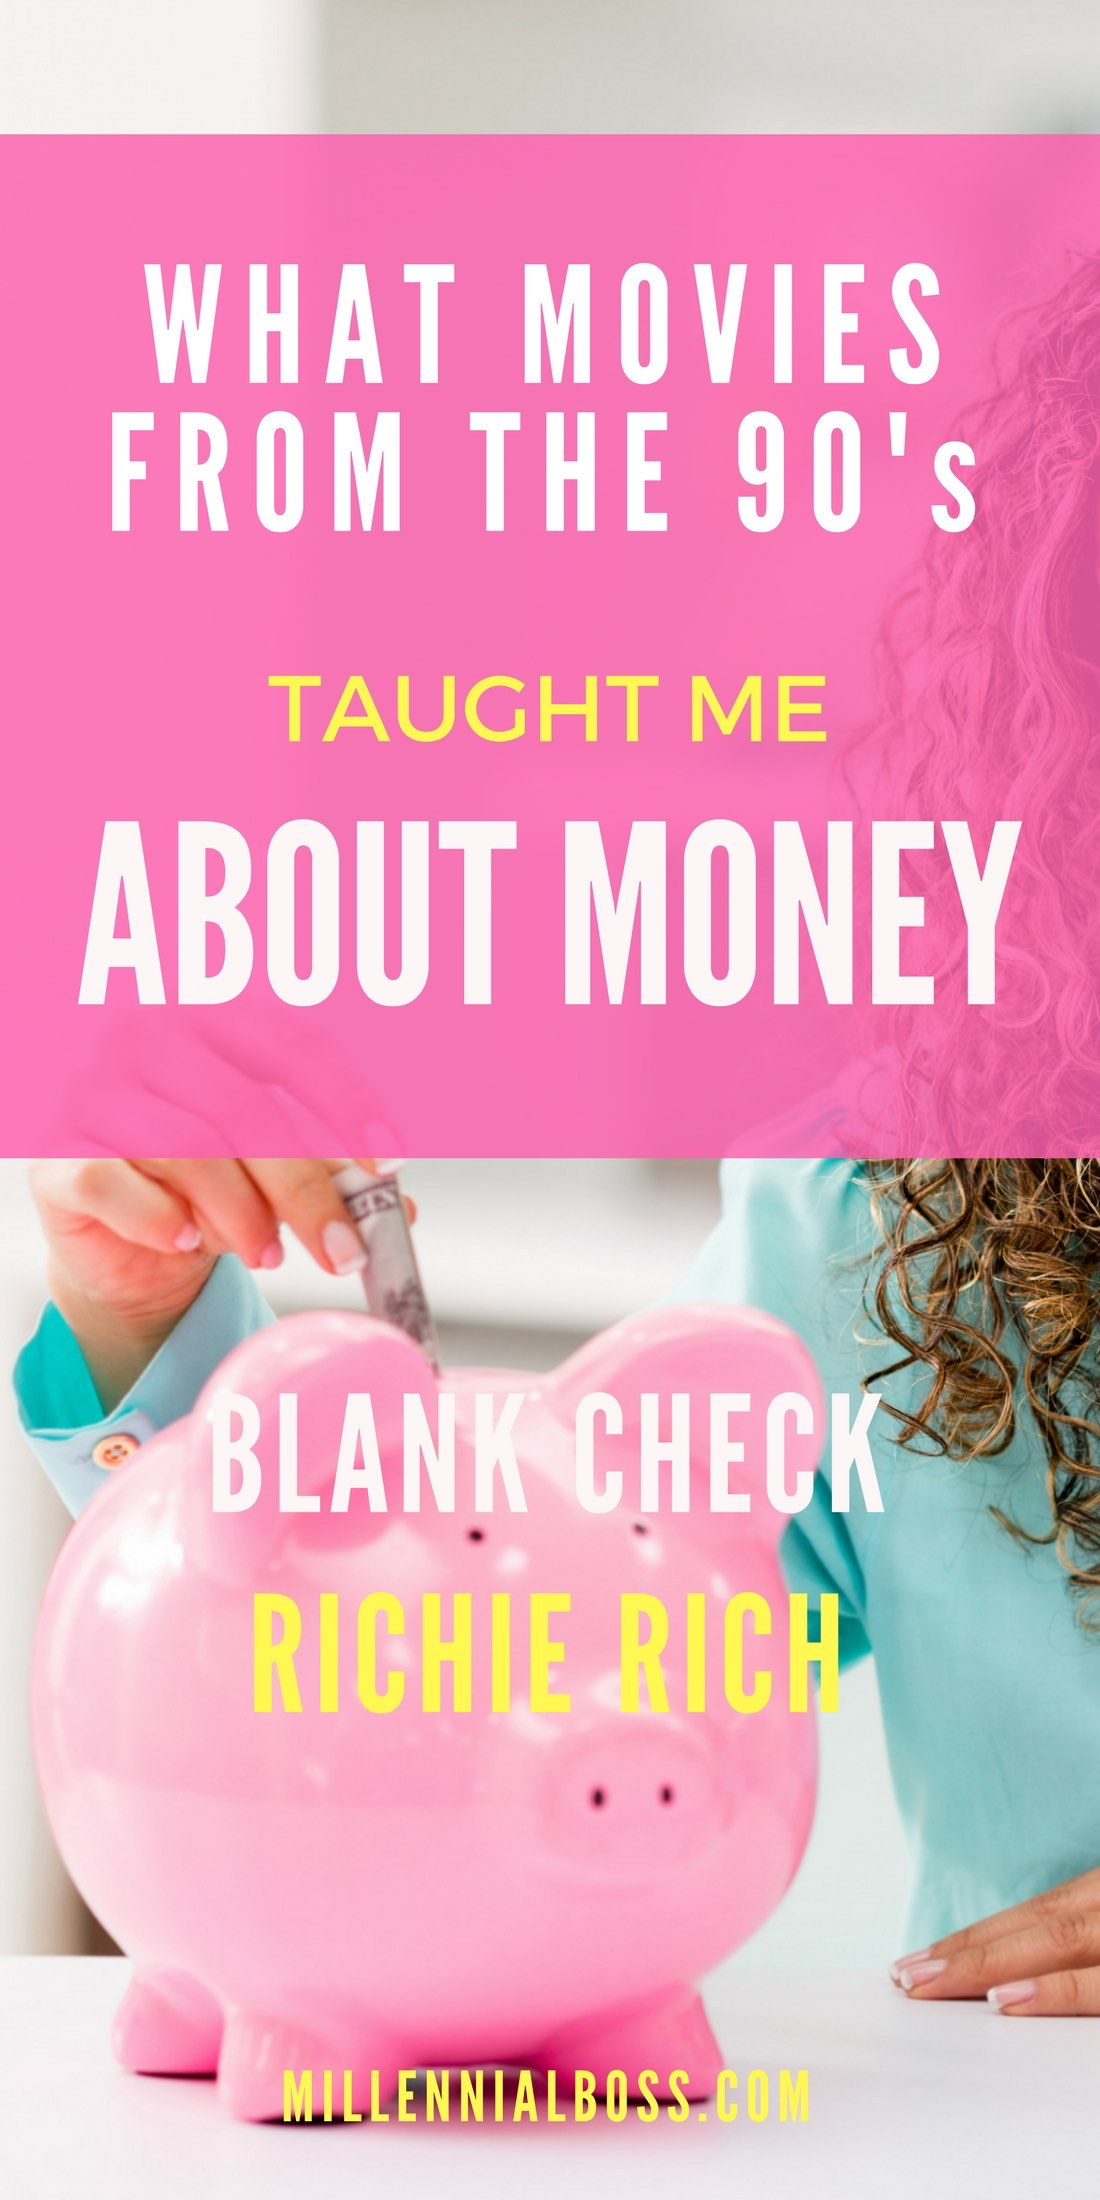 I totally forgot about Richie Rich and Blank Check! I hope these money lessons for kids are not lost on them!